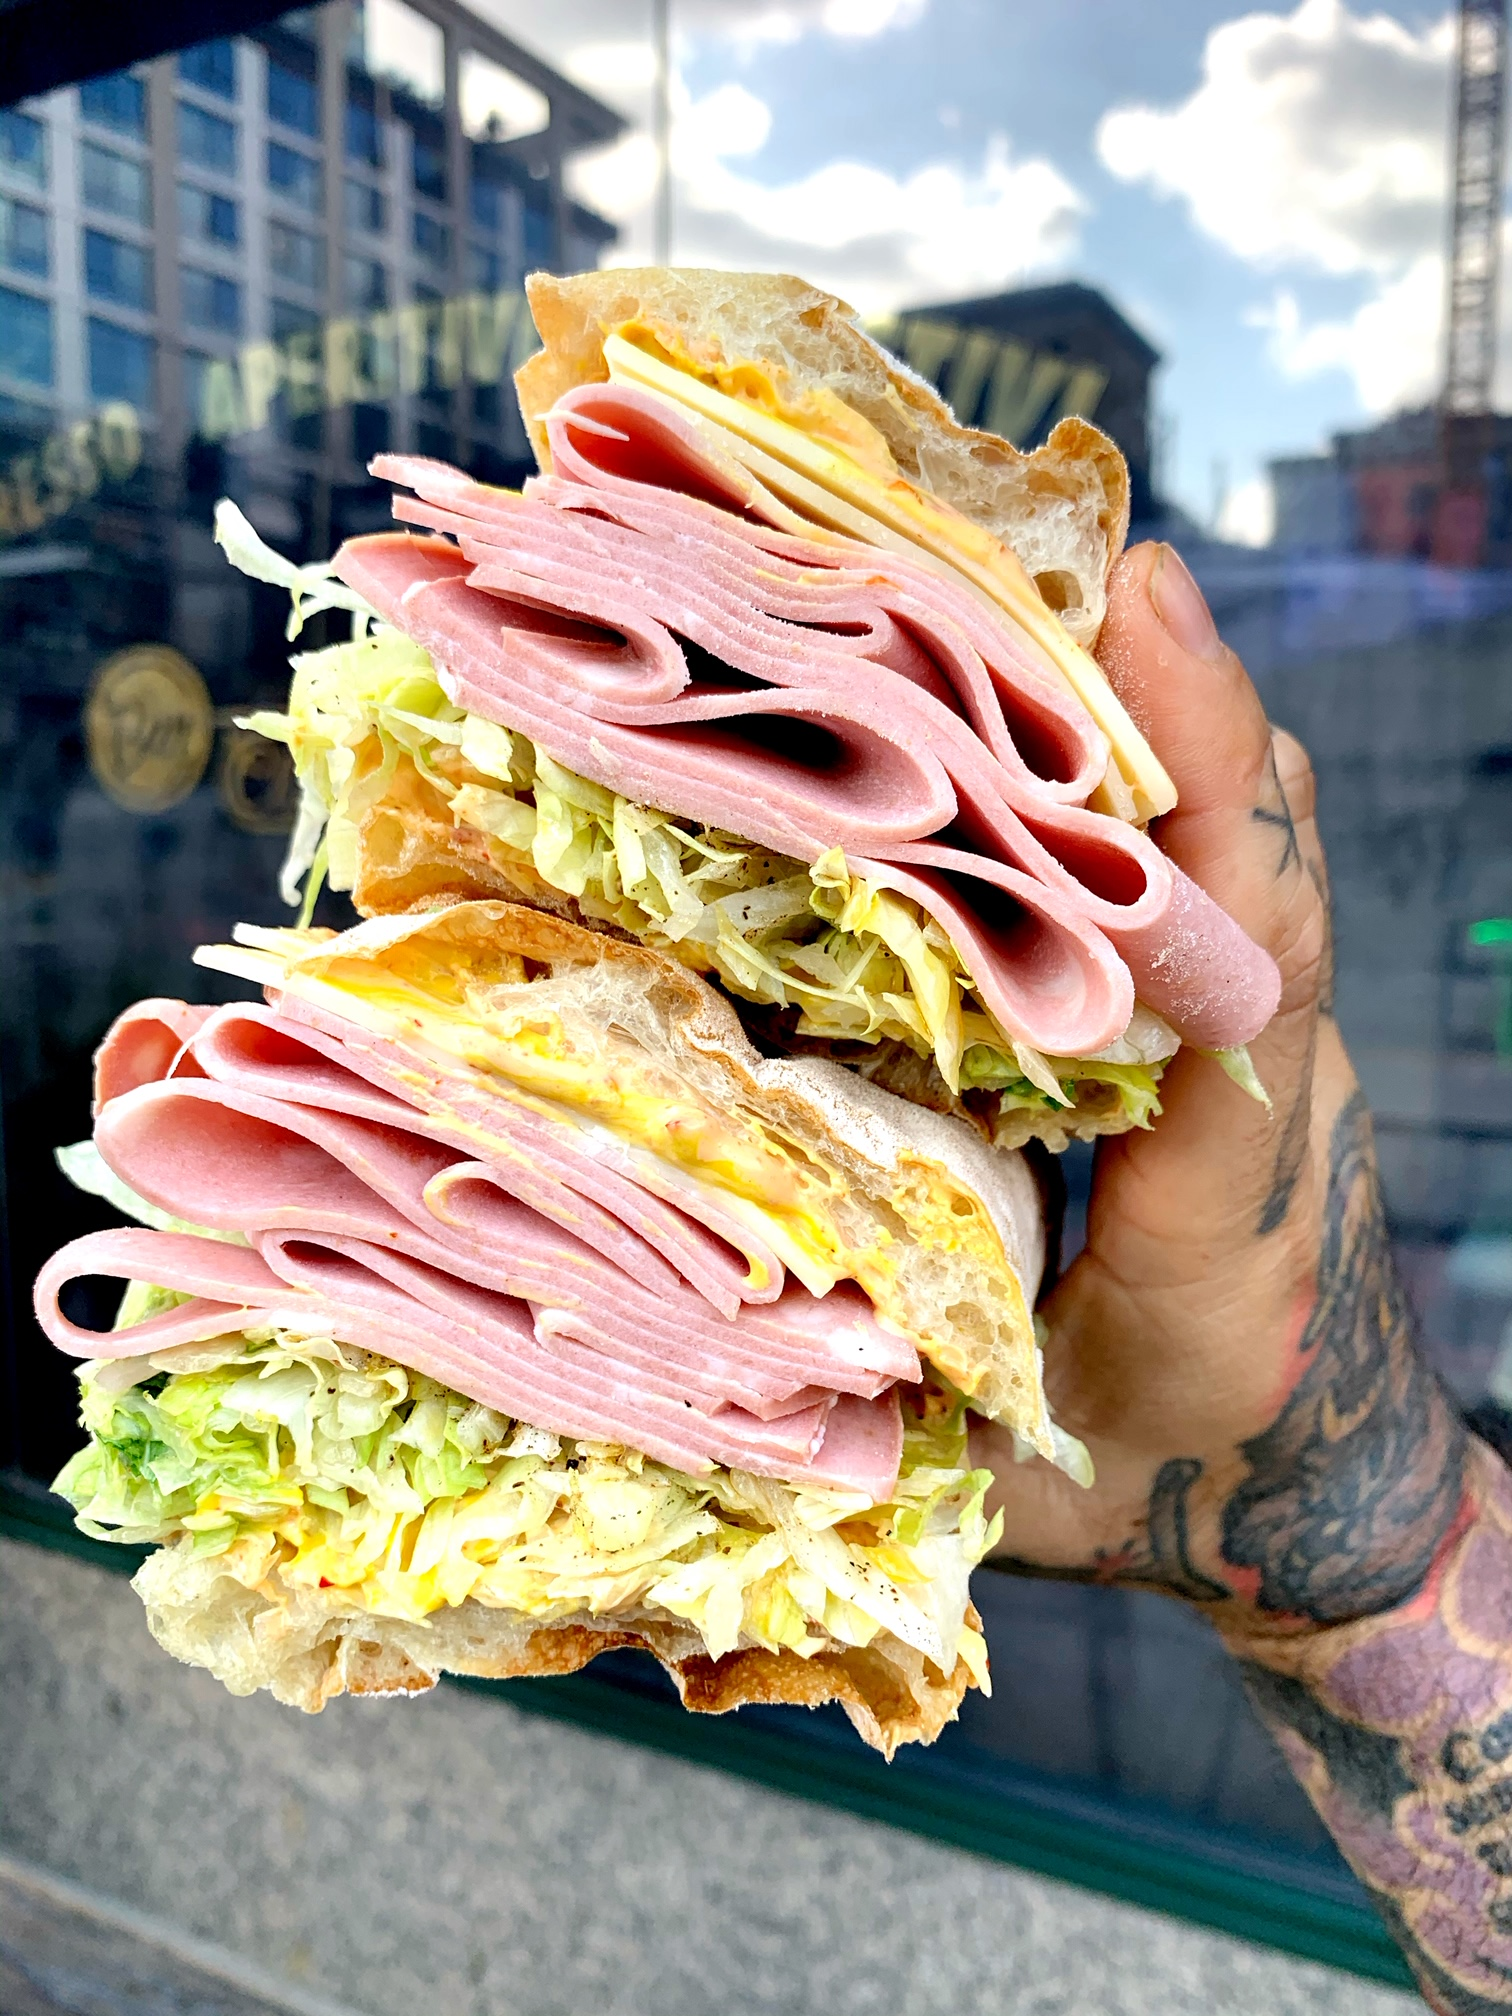 A photo of a man holding a sandwich within which you can see slices of ham, cheese, mustard, and lettuce